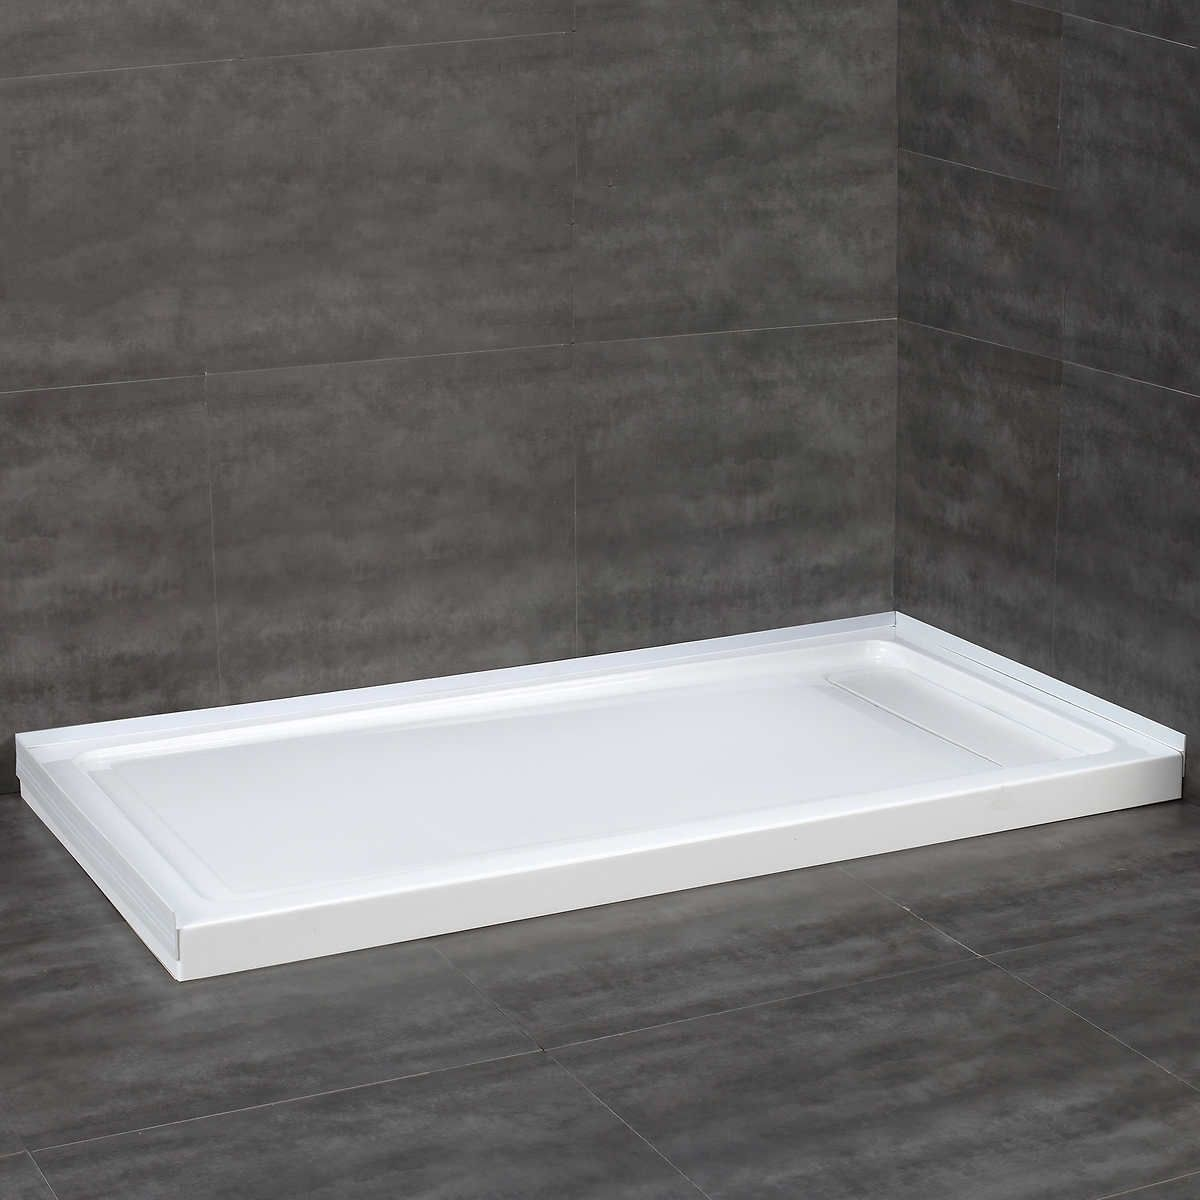 Costco Ove Decors Shower Base 32x60 And 36x72 279 Sizes